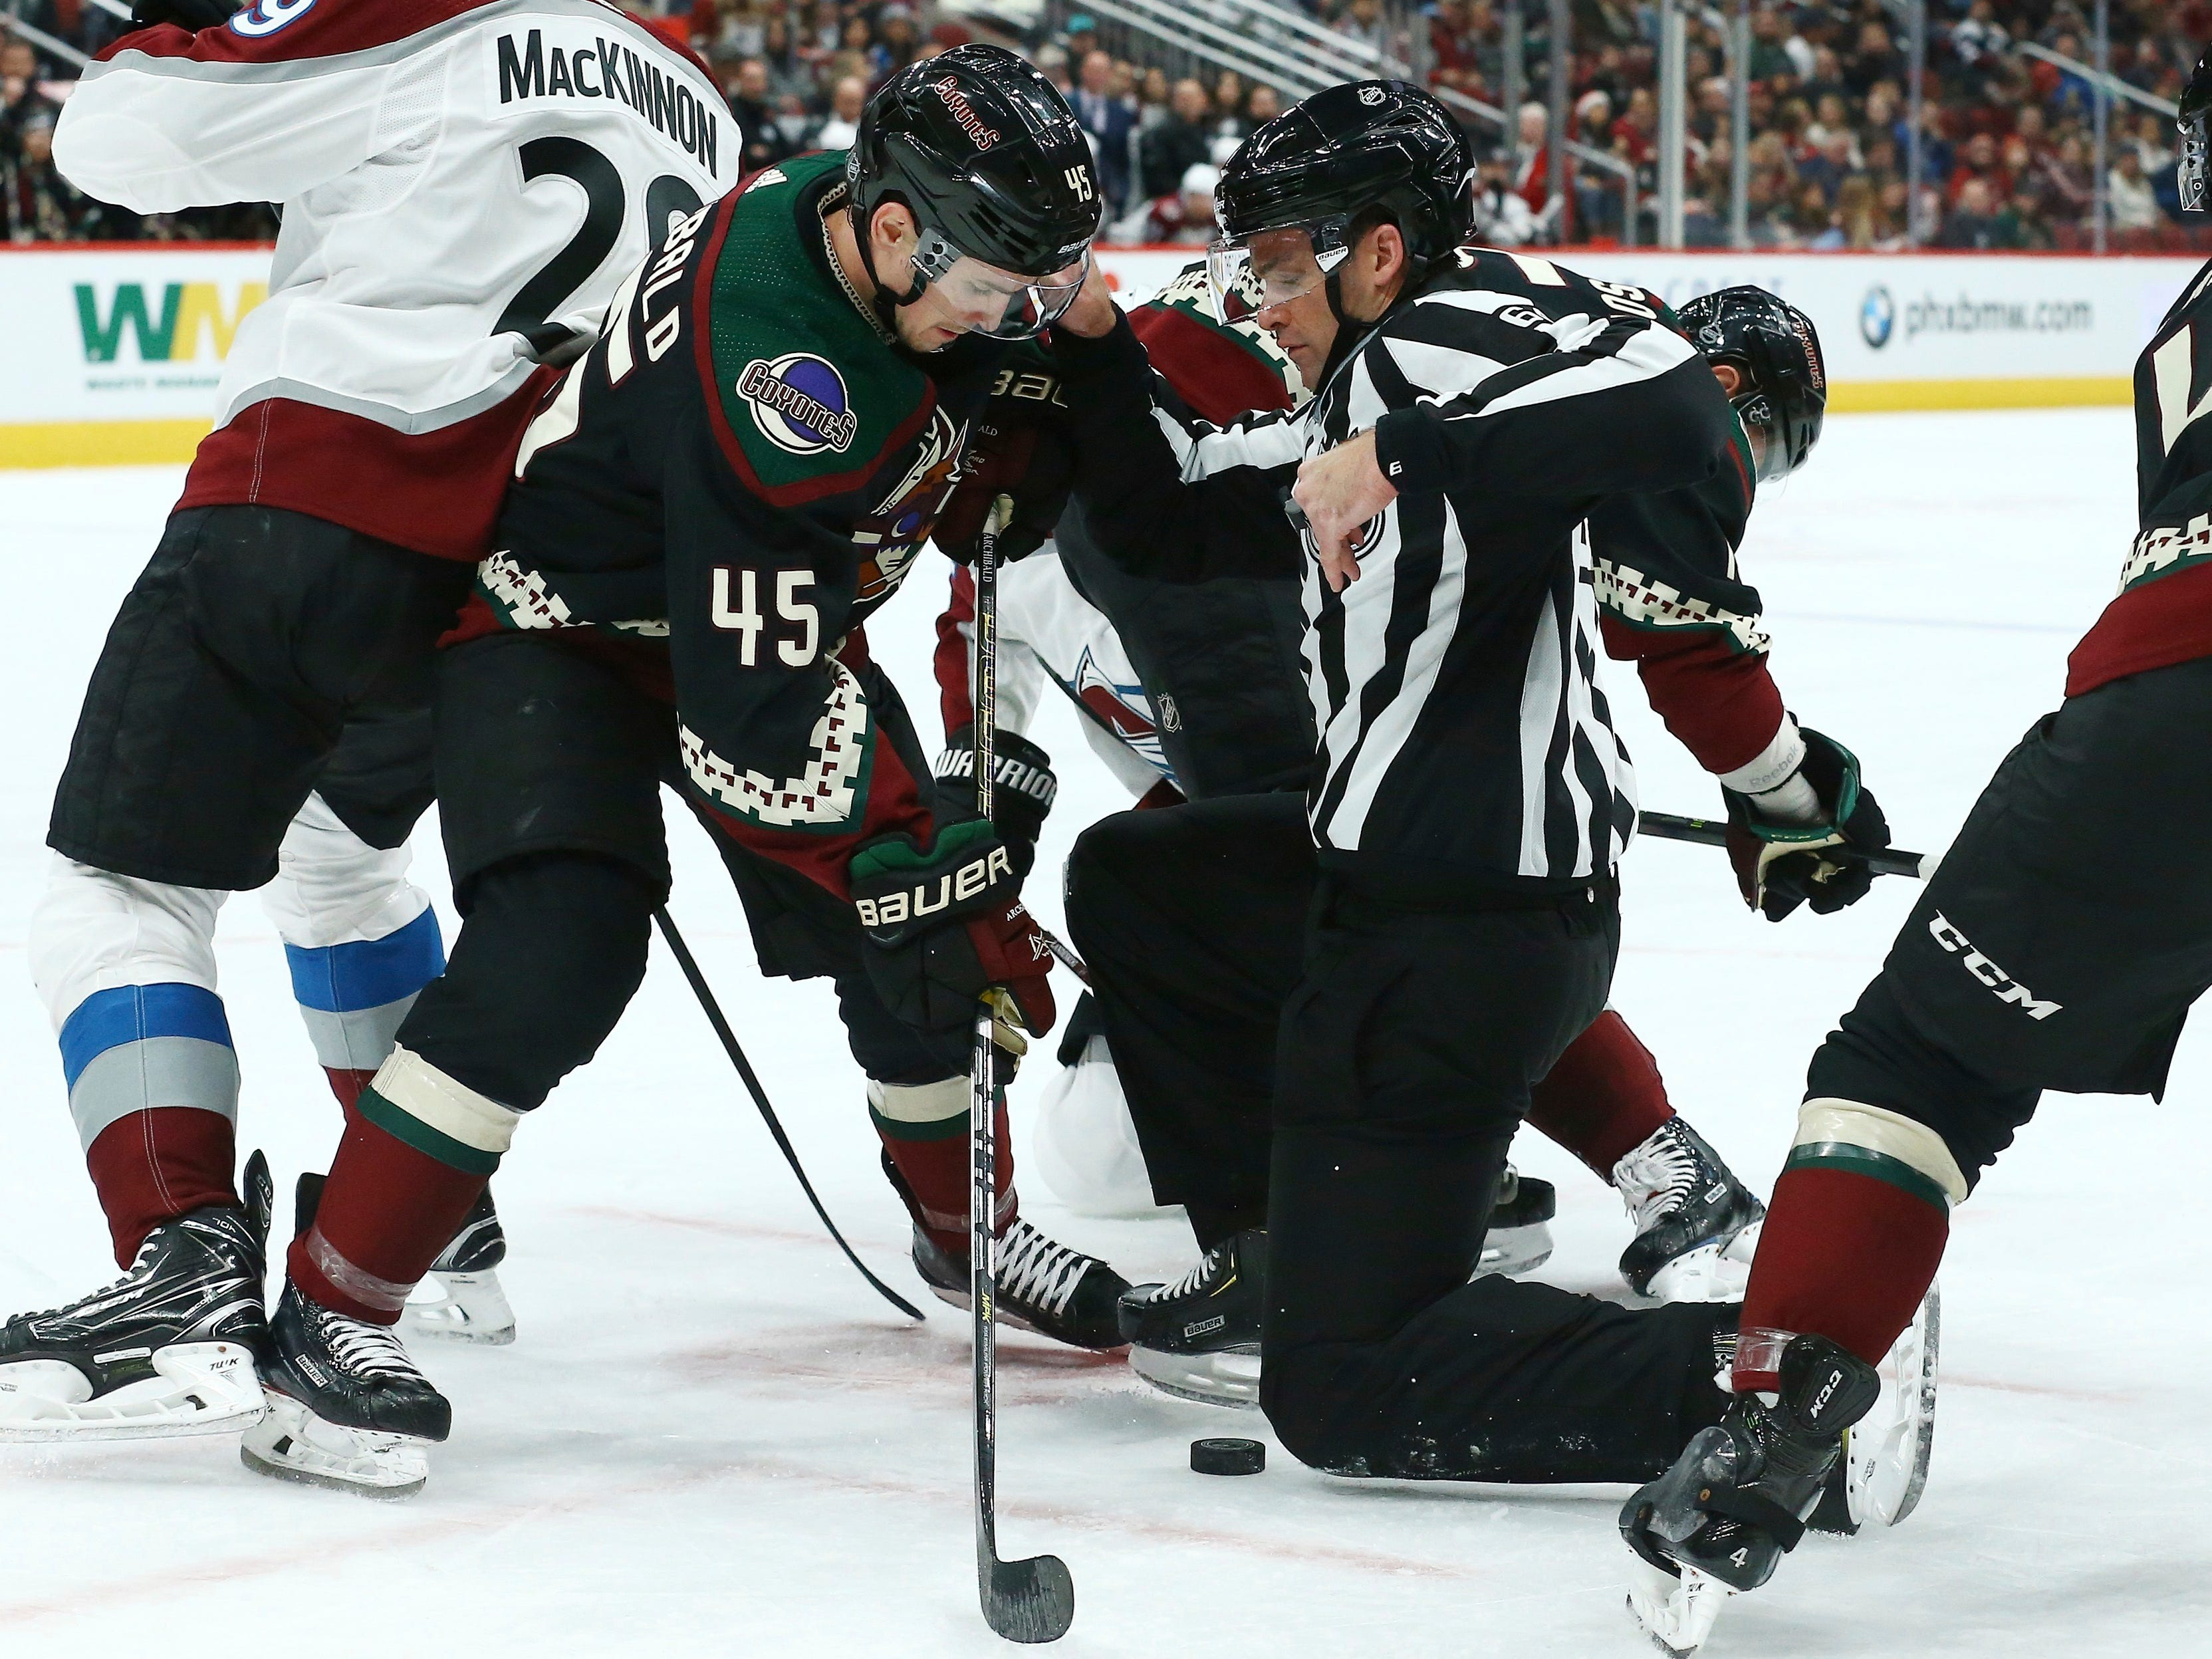 Arizona Coyotes right wing Josh Archibald (45) tries to get to the puck as linesman Brandon Gawryletz moves out of the way during the first period of an NHL hockey game against the Colorado Avalanche Saturday, Dec. 22, 2018, in Glendale, Ariz. (AP Photo/Ross D. Franklin)